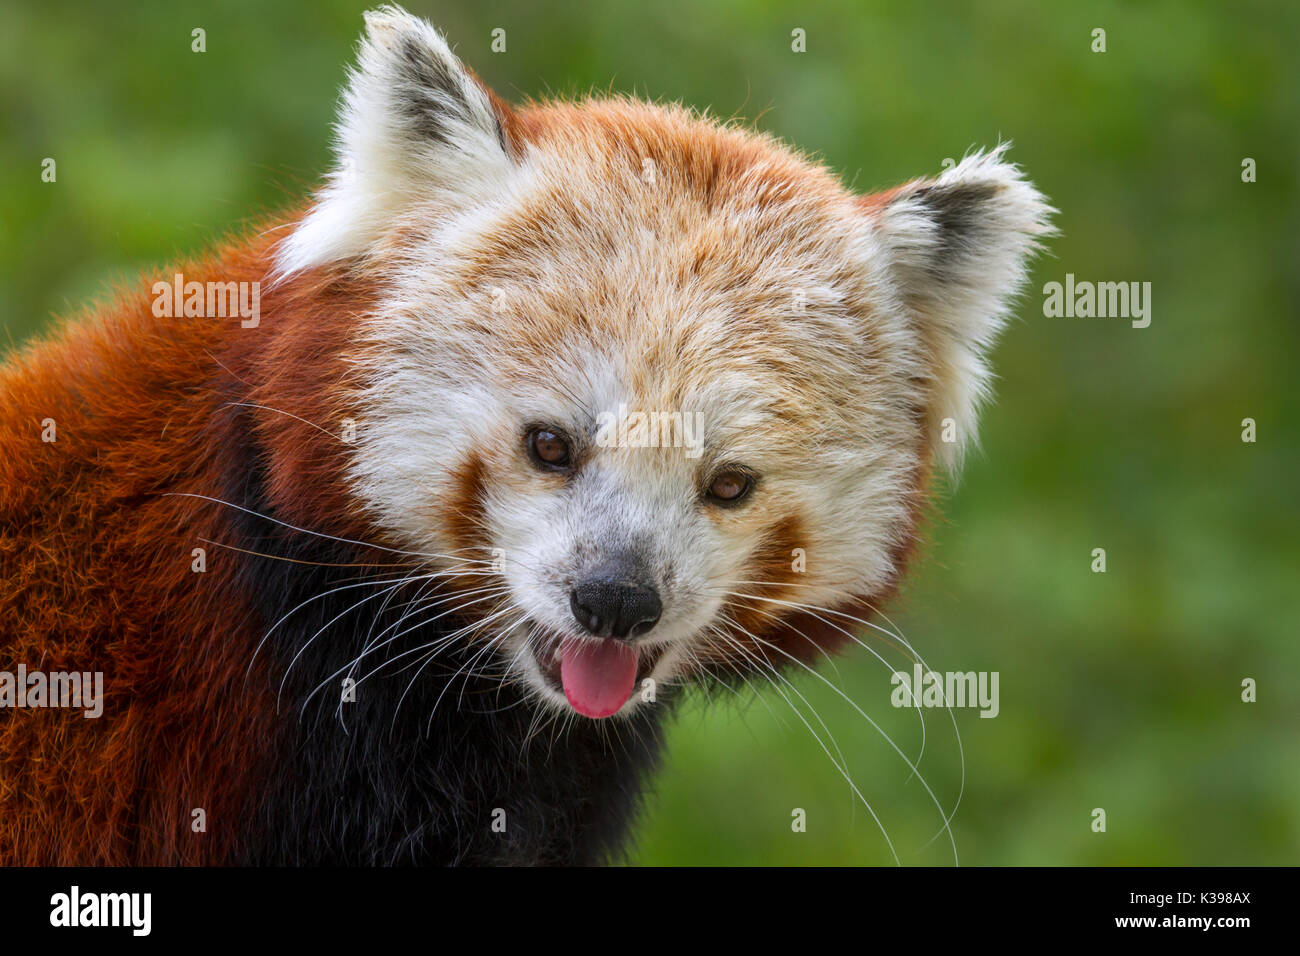 Red panda (Ailurus fulgens) at Blank Zoo Des Moines, IA, USA Stock Photo